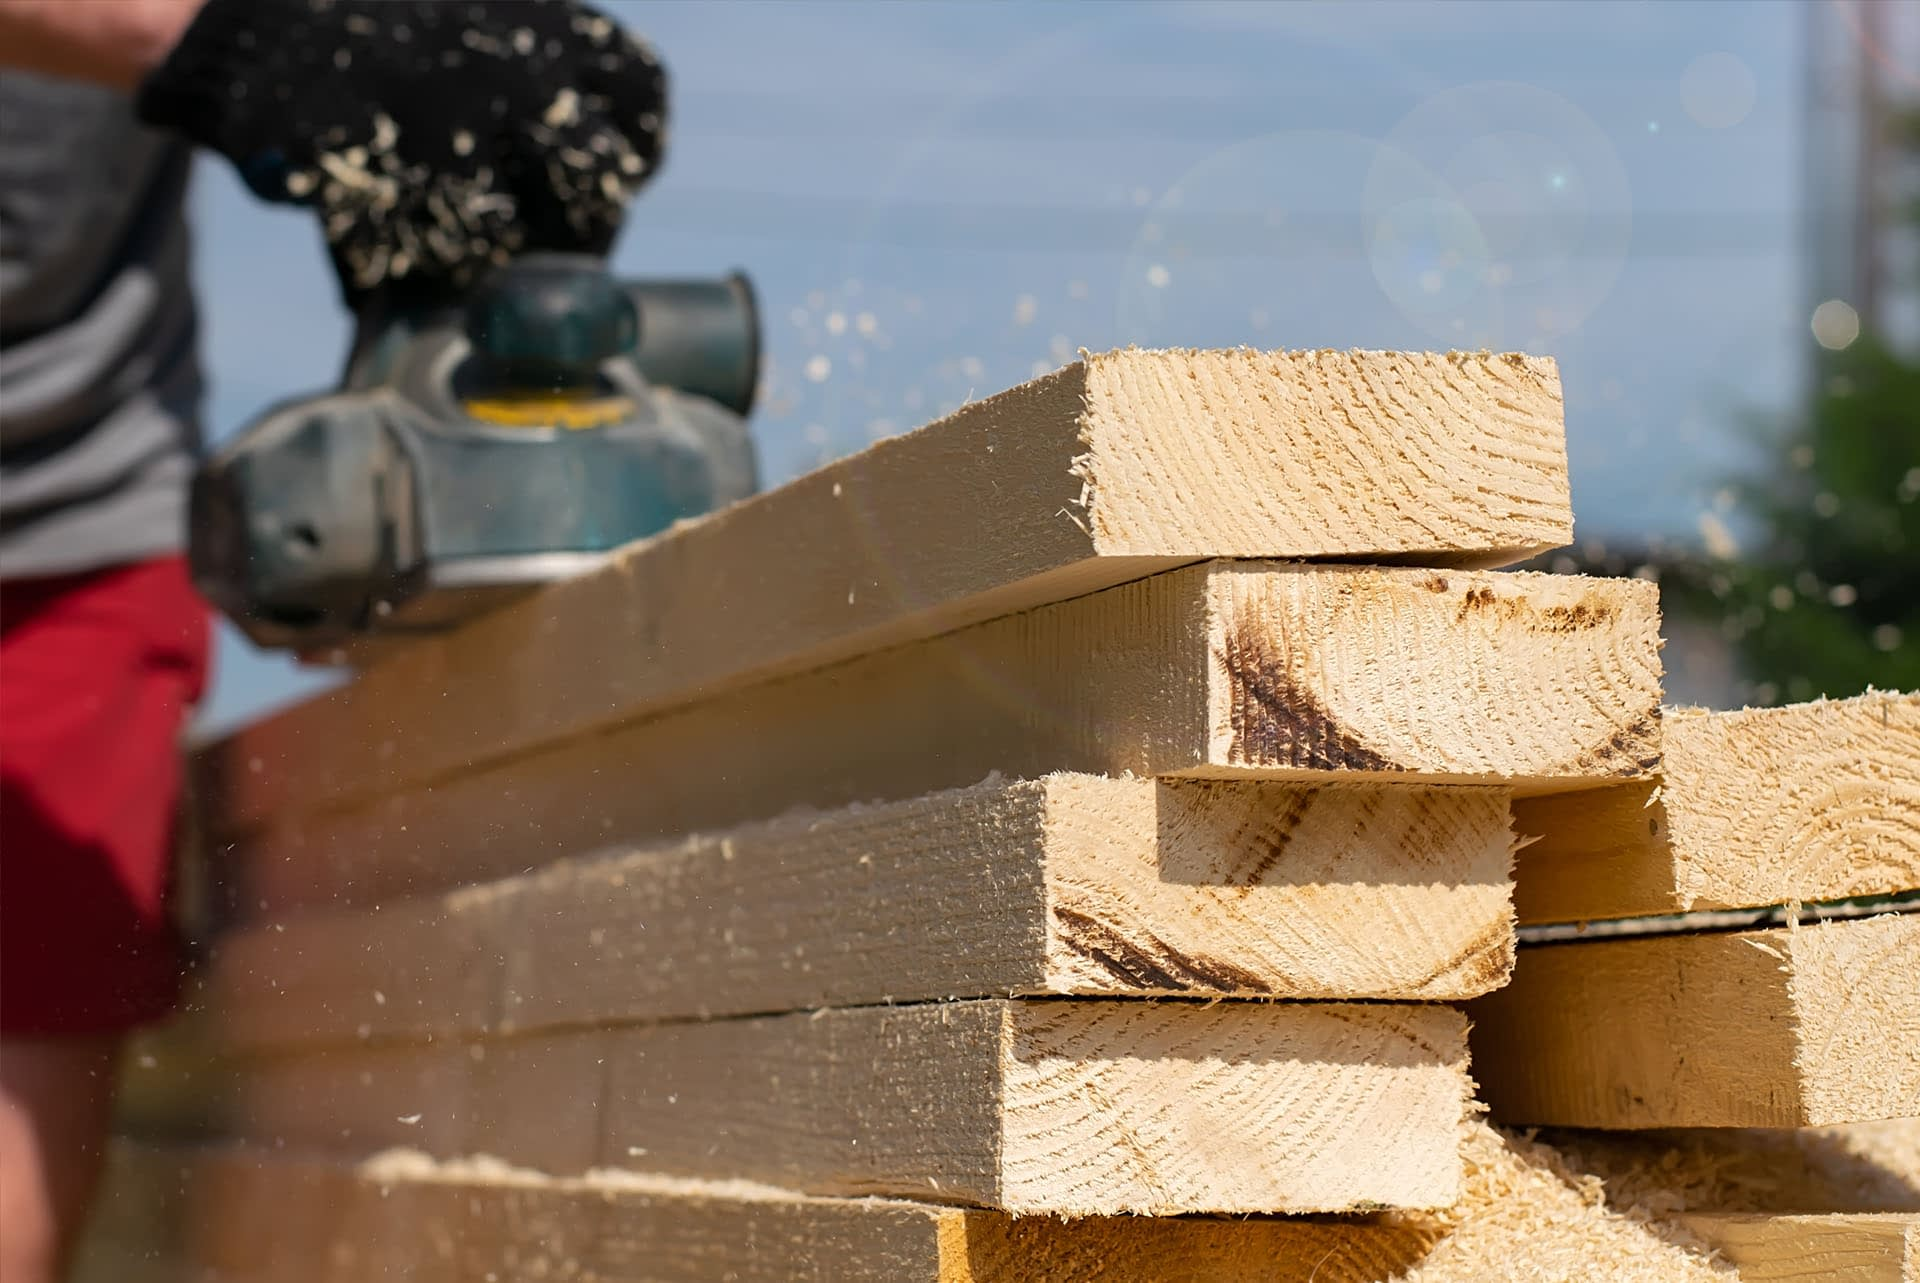 sawn-and-treated-timber-rough-sawn-cut